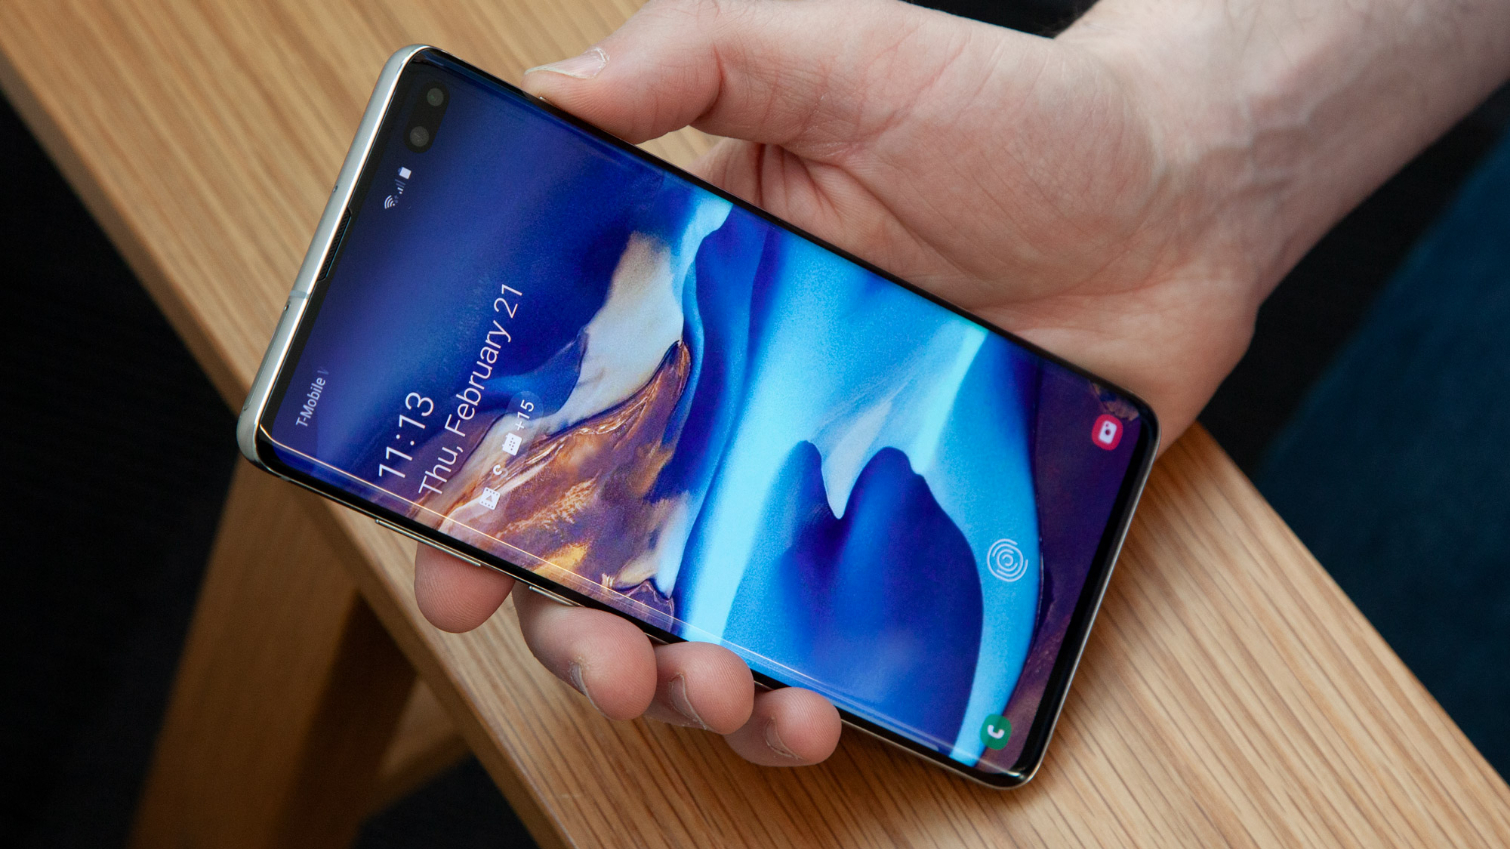 Galaxy S10 Owners Say This Bug Is Draining Their Battery | Tom's Guide